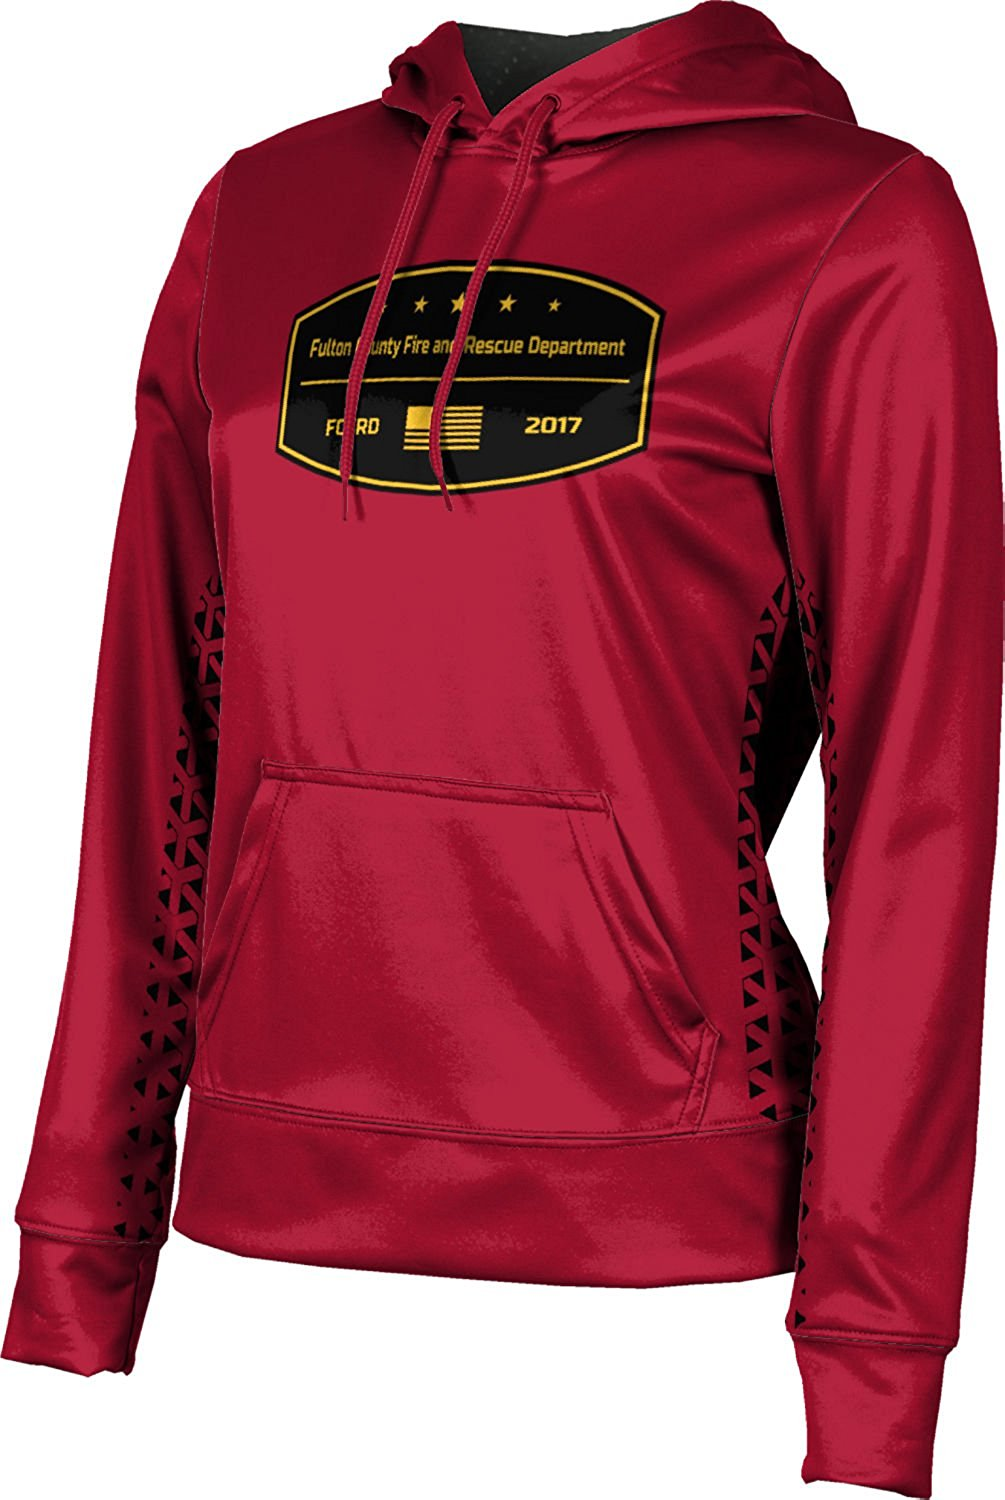 Girls' Fulton County Fire and Rescue Department Fire Department Geometric Hoodie Sweatshirt